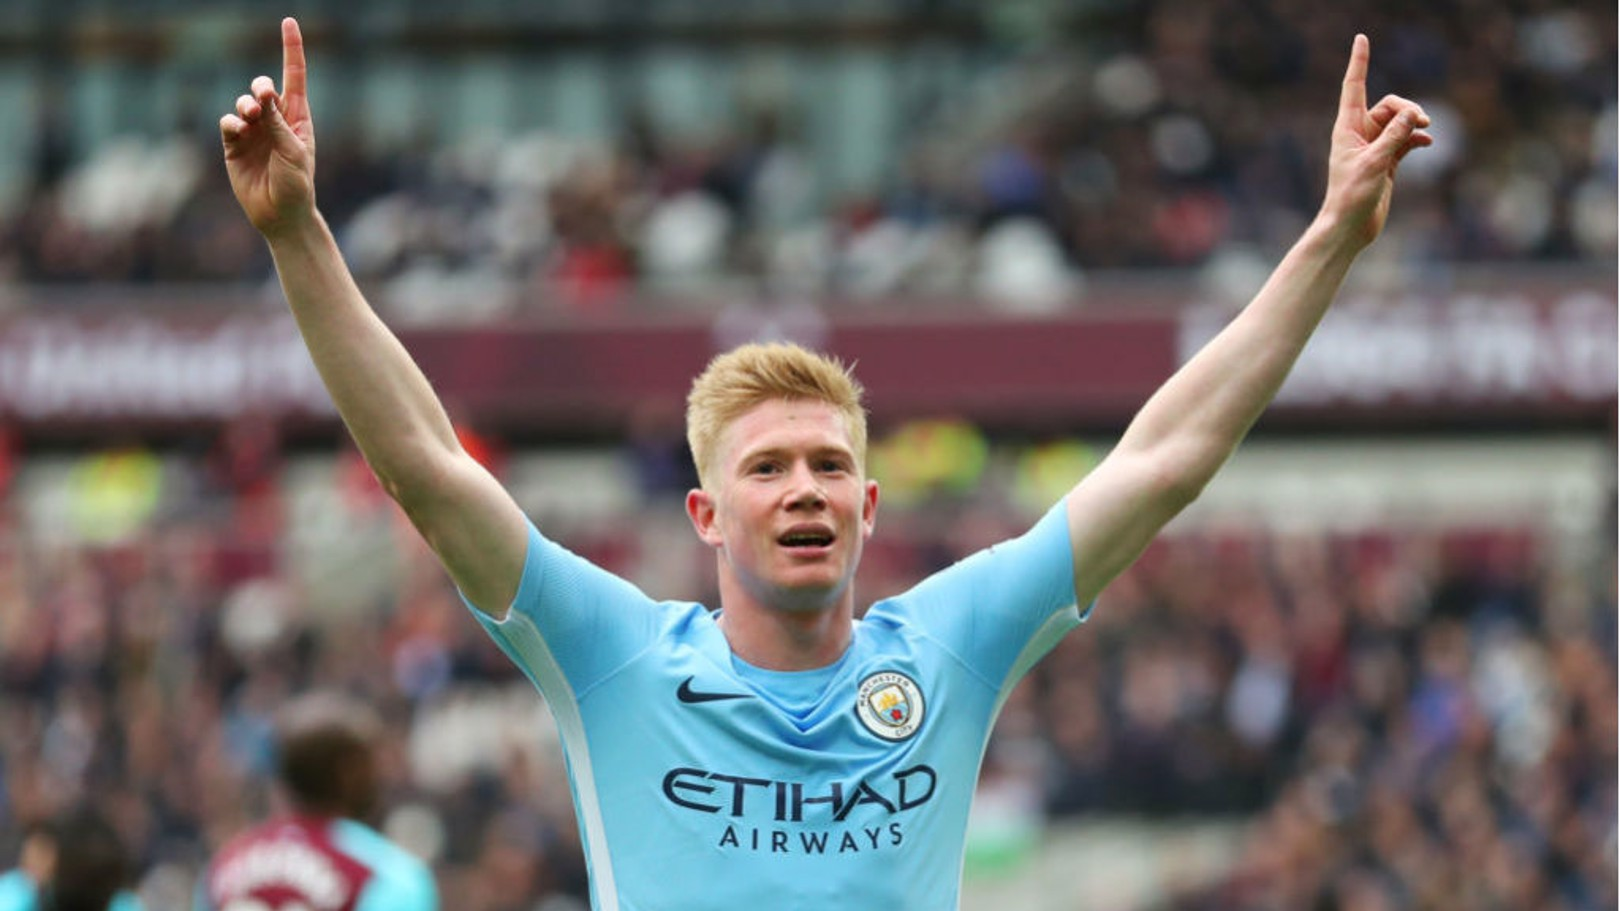 SPECIAL K: Kevin De Bruyne has been nominated for FIFA's best men's player of the year award